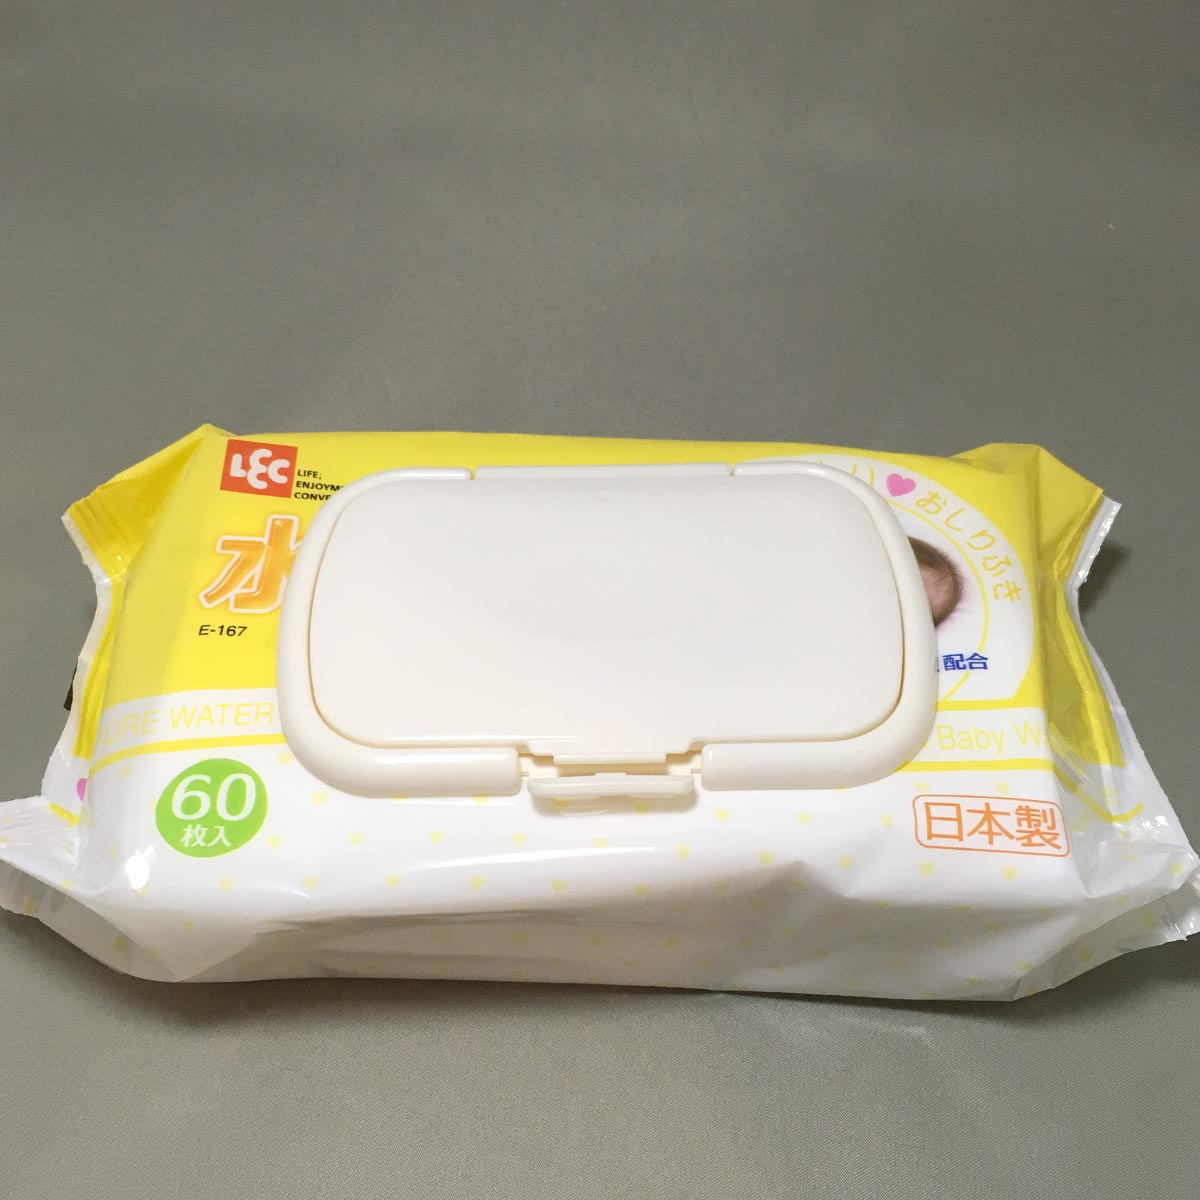 Reusable Baby Wipes Lid - lid on wipes